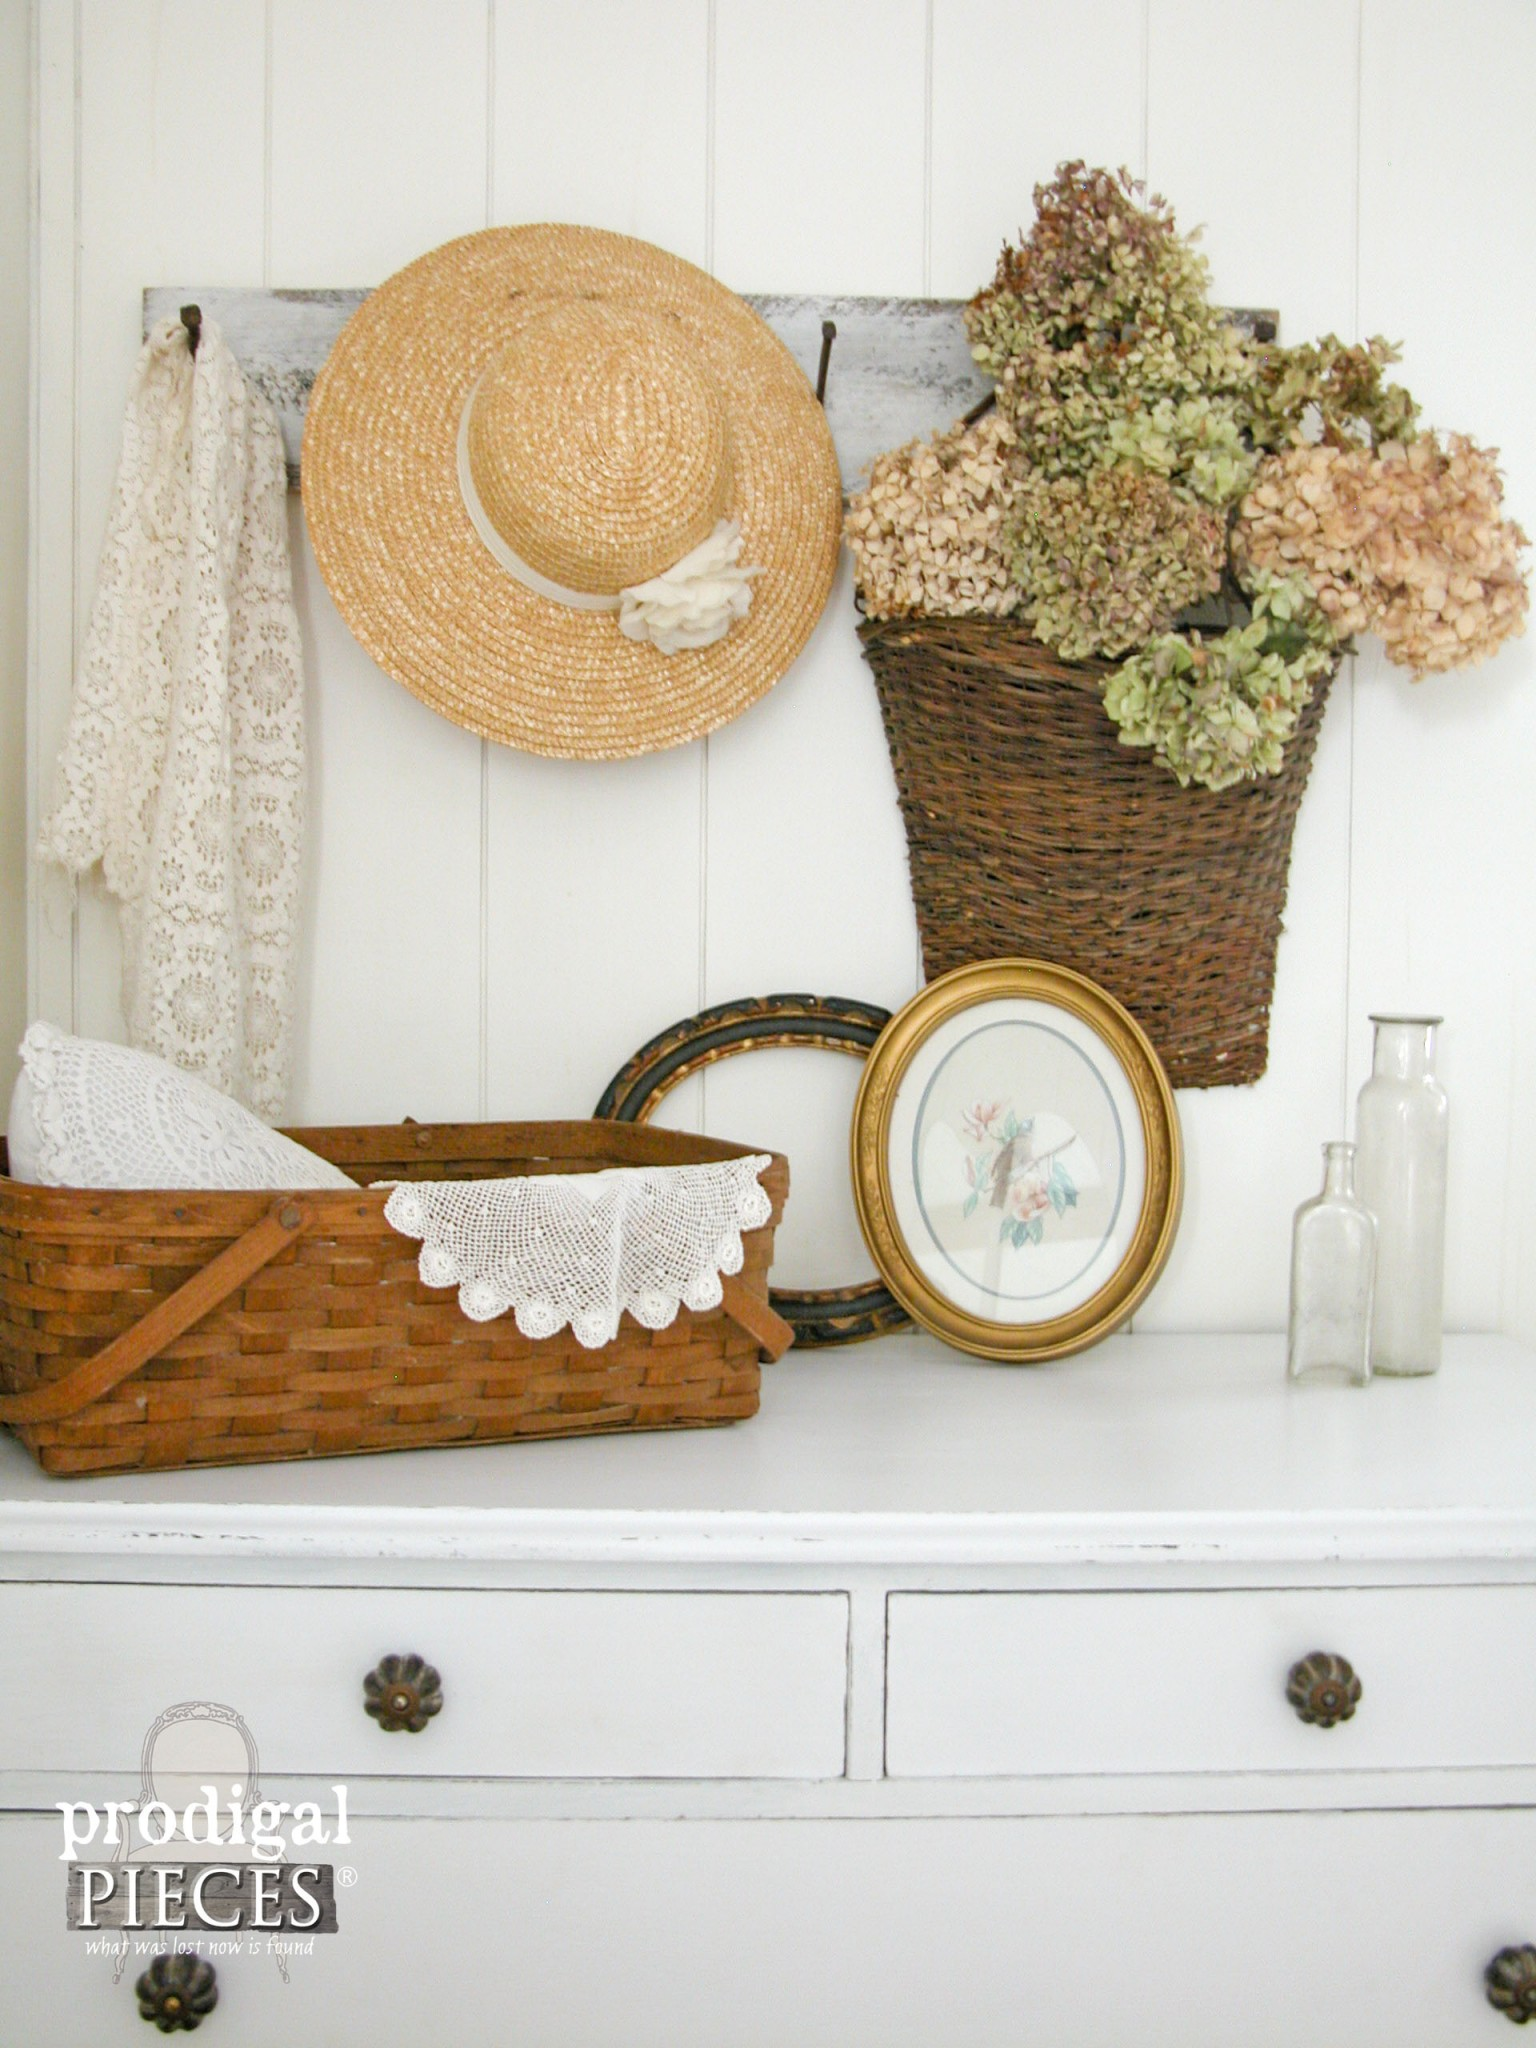 Rustic Farmhouse Chic Cottage Style Vignette by Prodigal Pieces | www.prodigalpieces.com